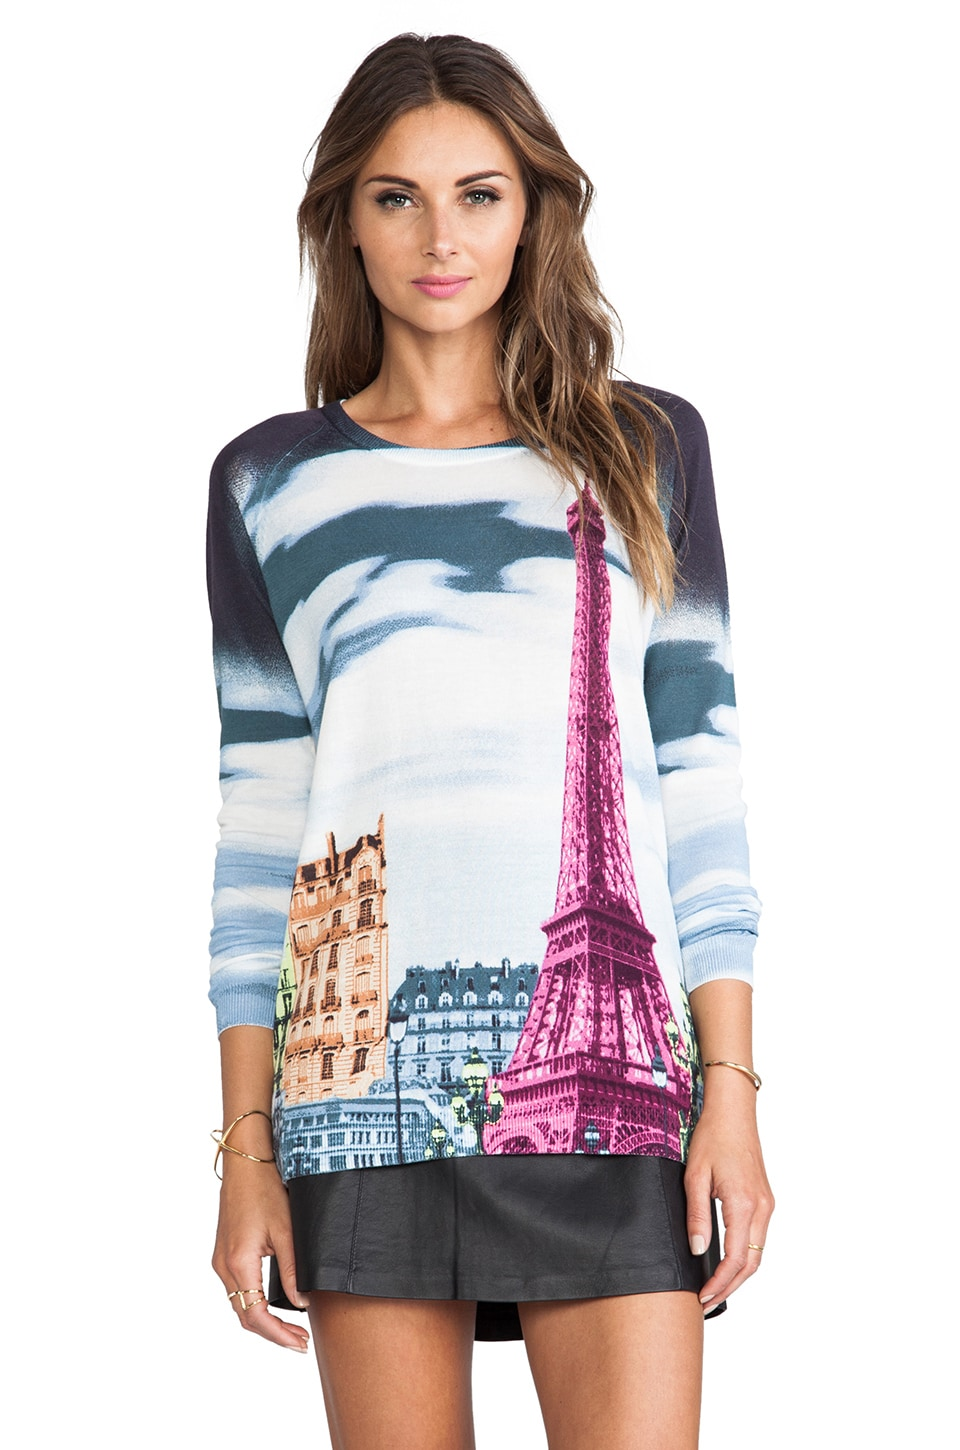 Tibi Eiffel Tower Printed Raglan Sweater in Black Multi